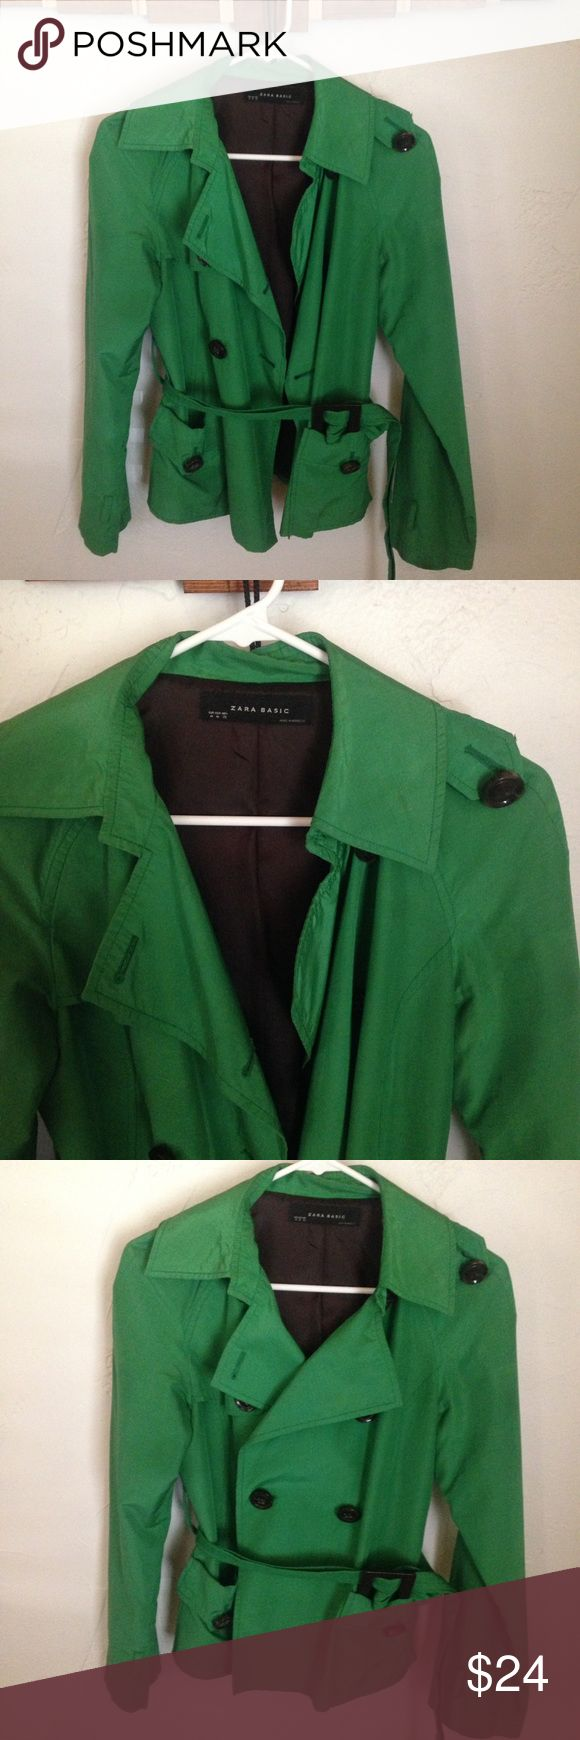 Green Zara jacket medium Gorgeous green Zara jacket. Perfect for the office of as a classy light spring jacket. Excellent used condition, no blemishes or stains. Size medium. True to fit. Very flattering with the belt. Zara Jackets & Coats Blazers